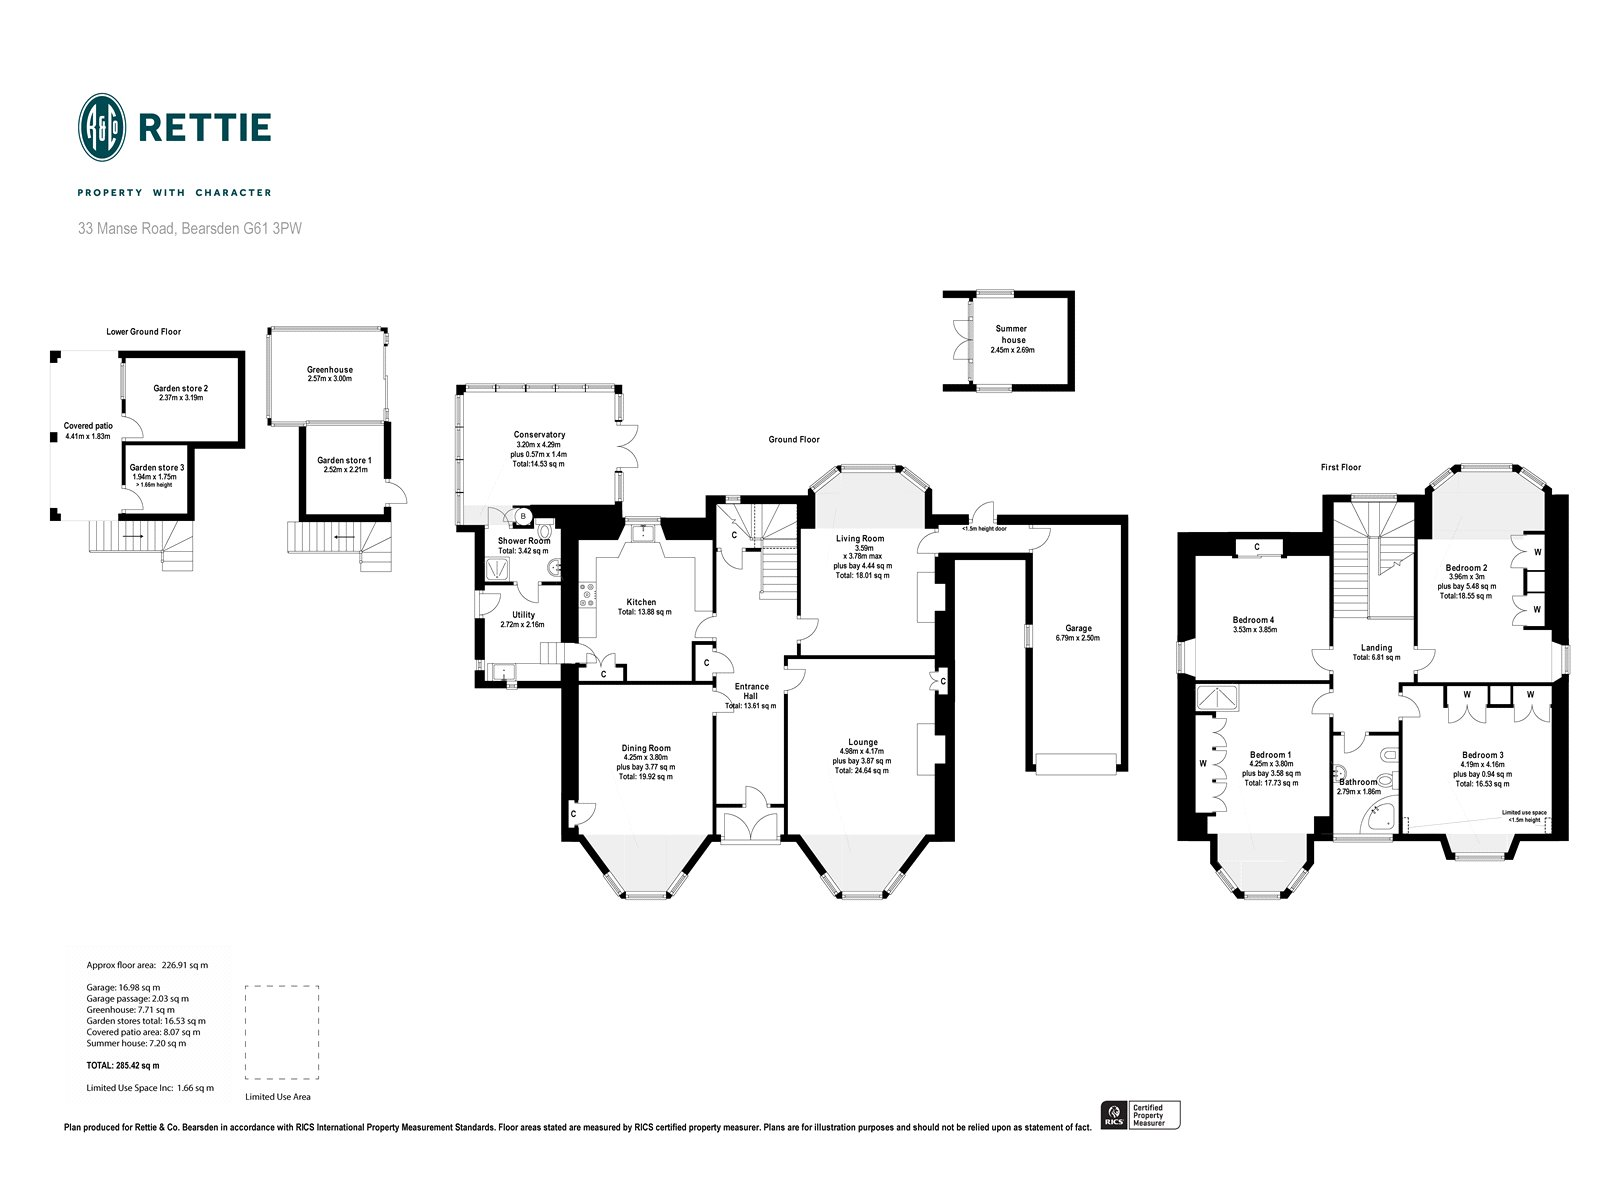 Floorplans for Manse Road, Bearsden, Glasgow, G61